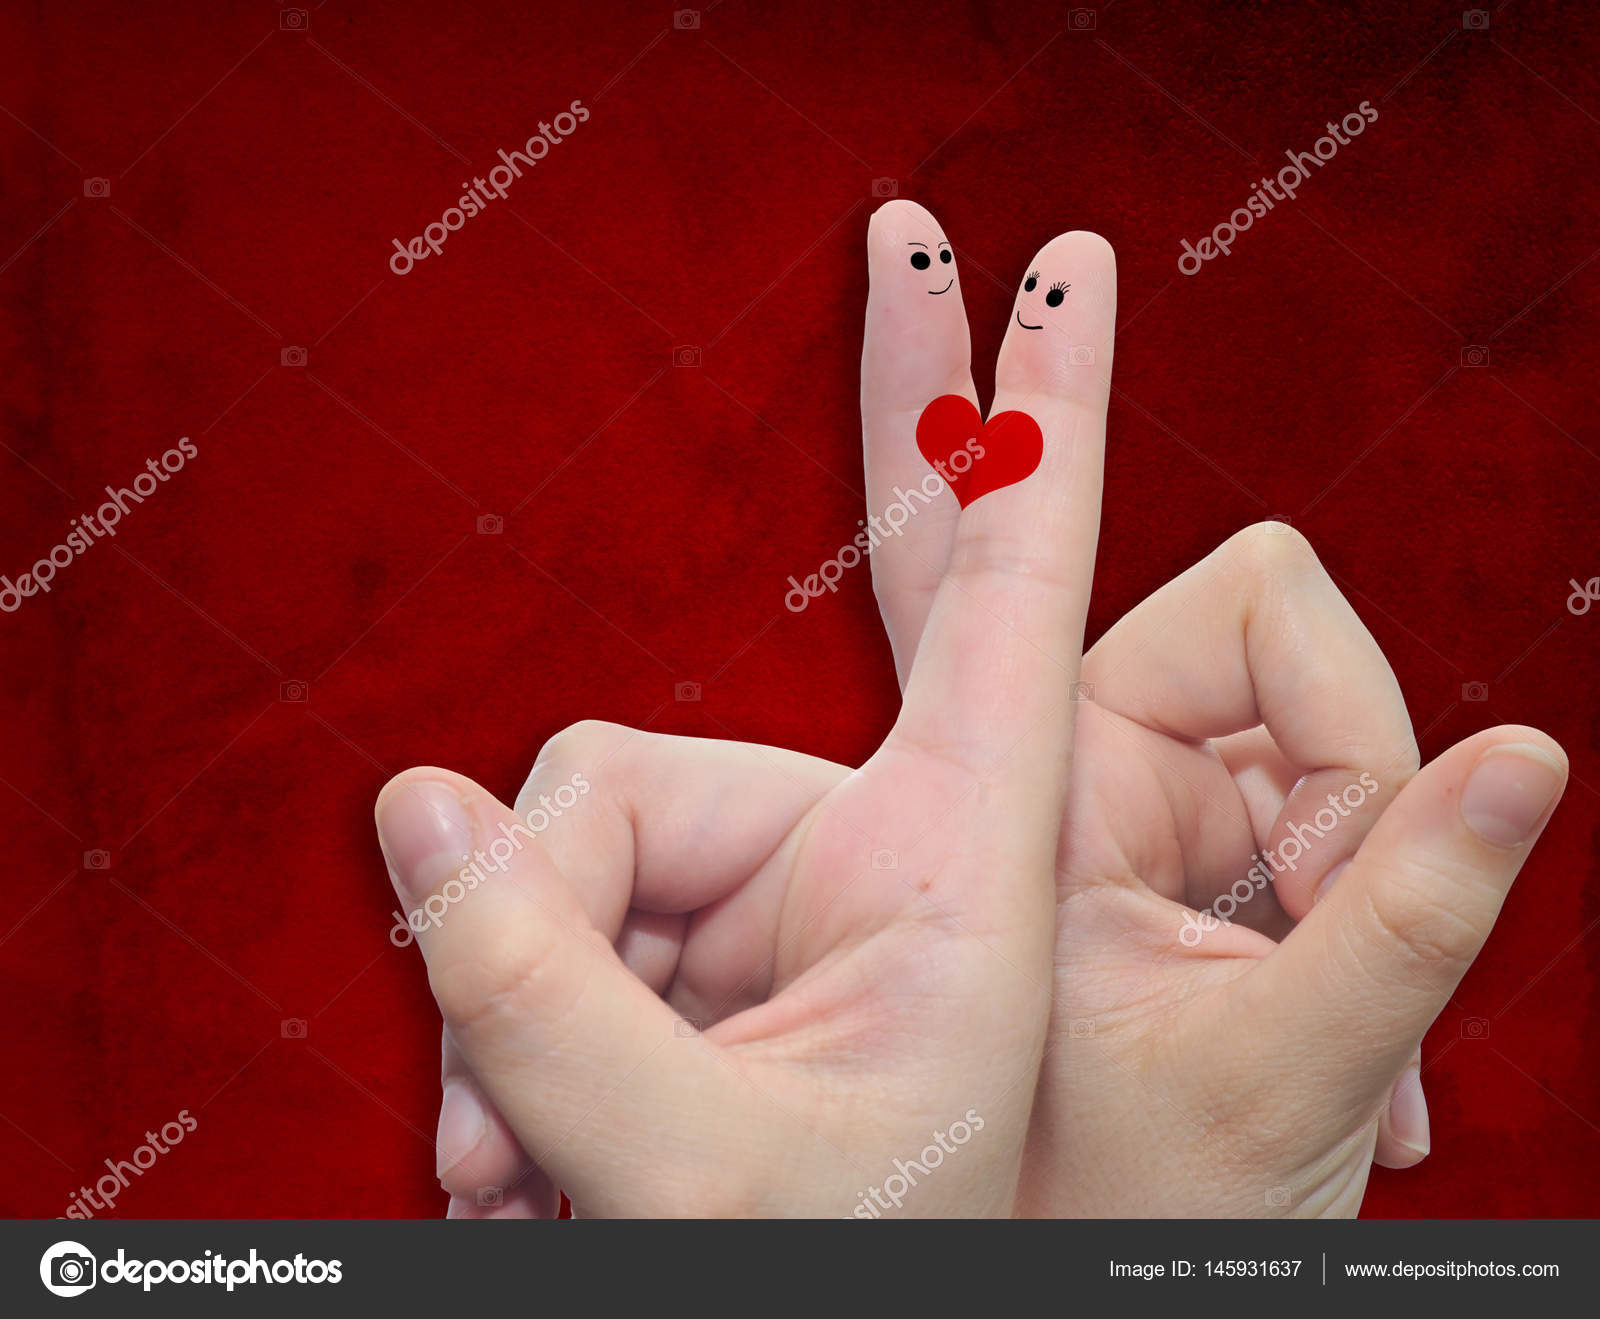 Fingers With Heart And Faces Stock Photo Design36 145931637